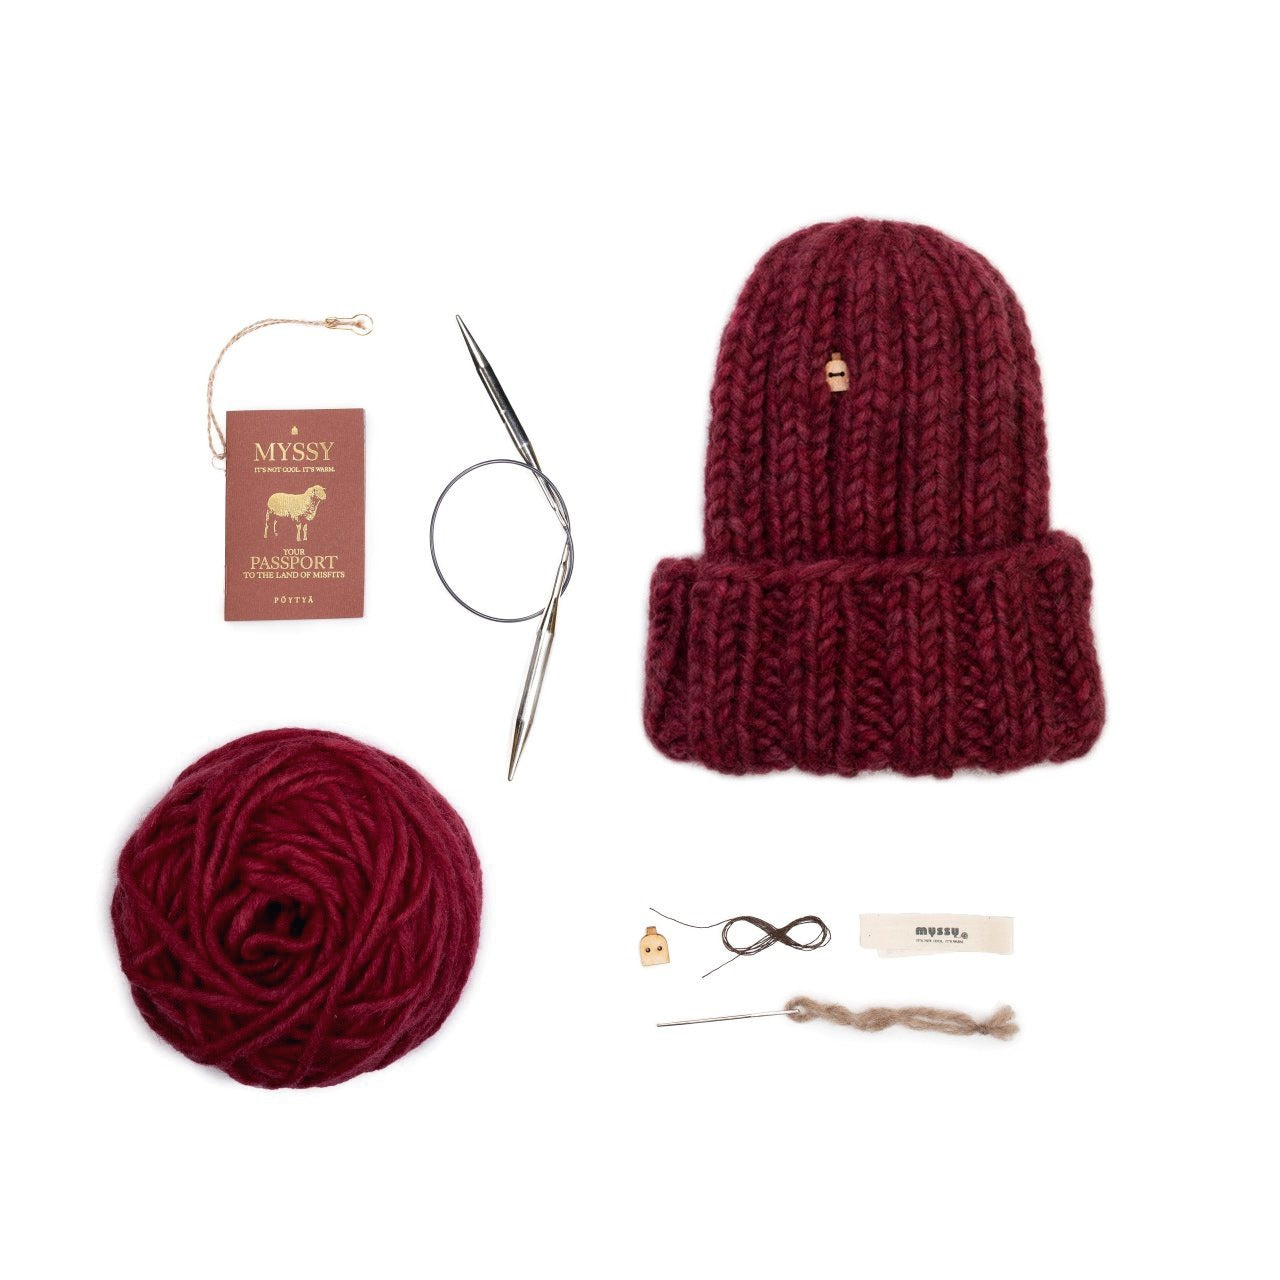 Plum My Muffi DIY kit